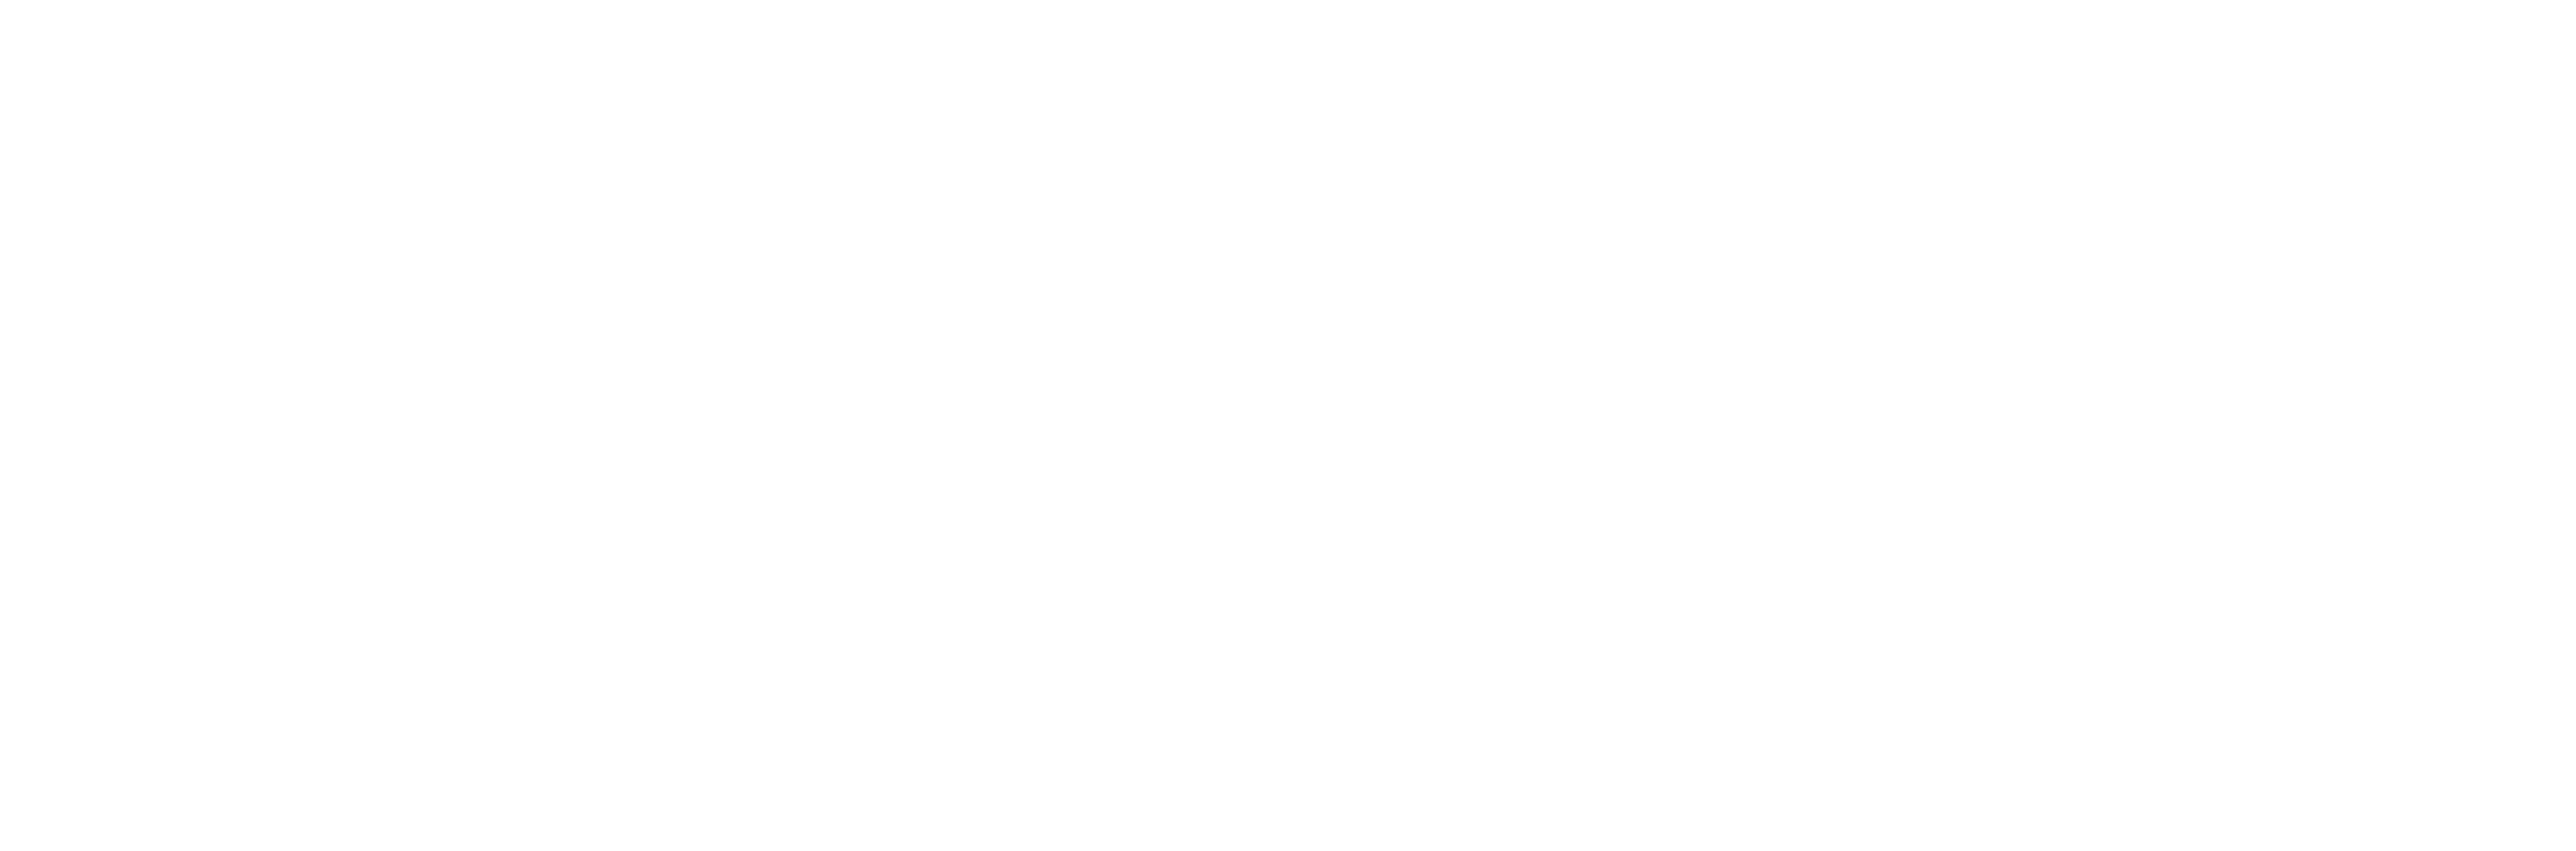 Boat-In Movies